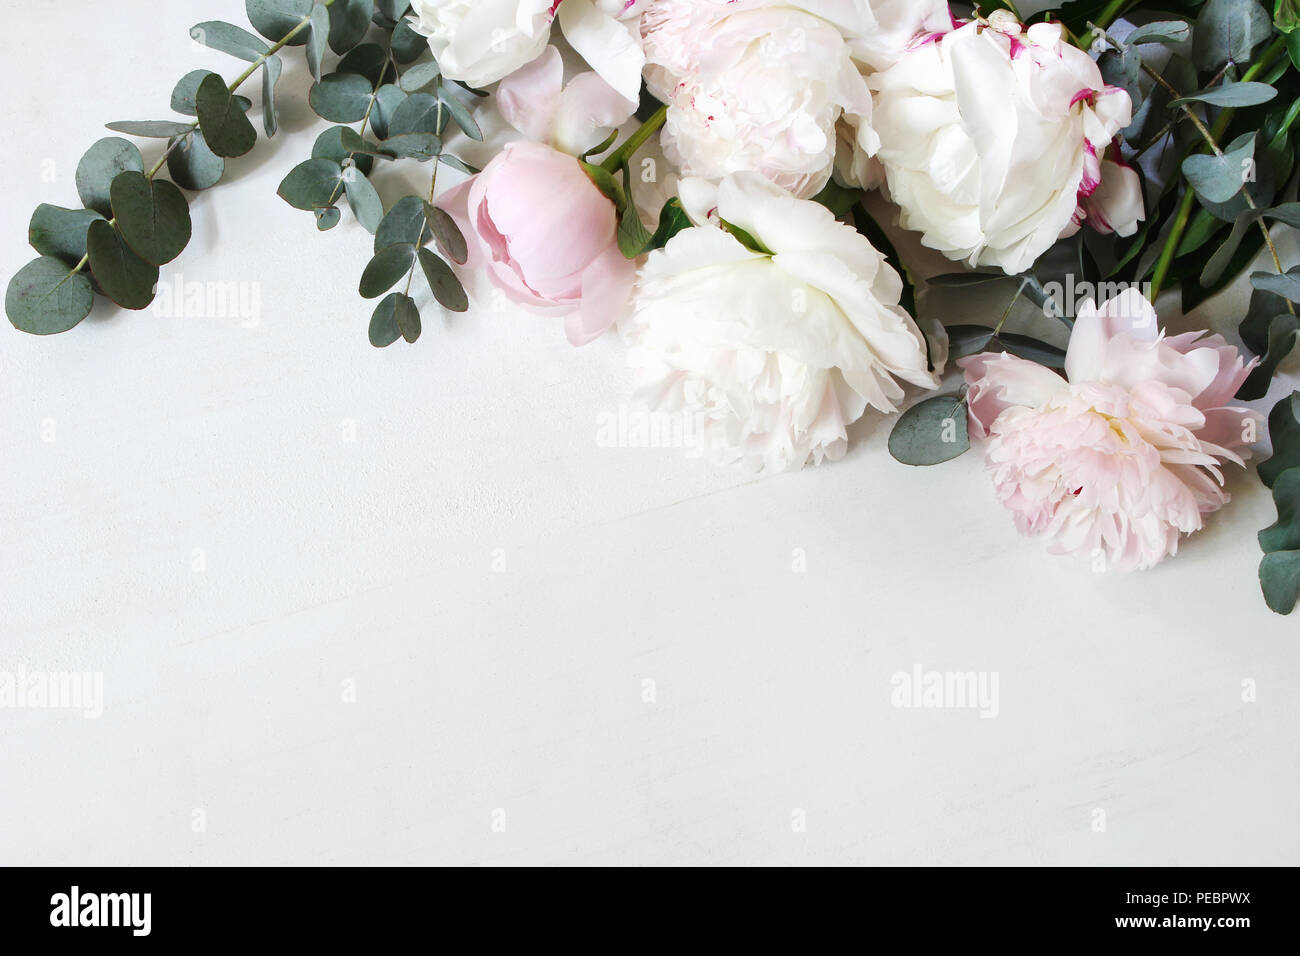 Styled Stock Photo Decorative Still Life Floral Composition Wedding Or Birthday Bouquet Of Pink And White Peony Flowers And Eucalyptus Branches White Table Background Flat Lay Top View Stock Photo Alamy